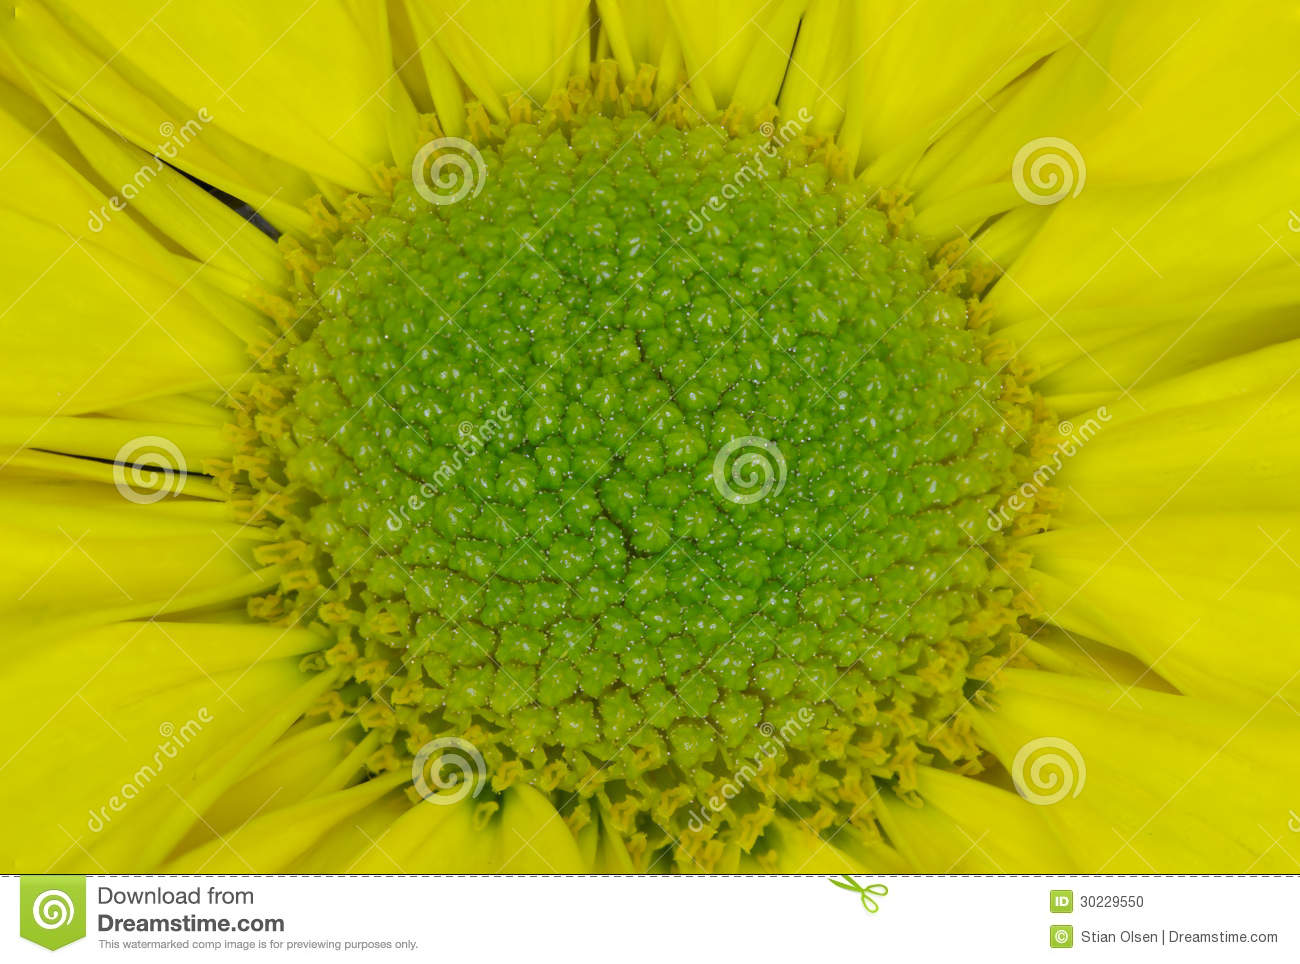 Macro flower center stock photo image of natural botanic 30229550 close up picture of a yellow flower with a green center mightylinksfo